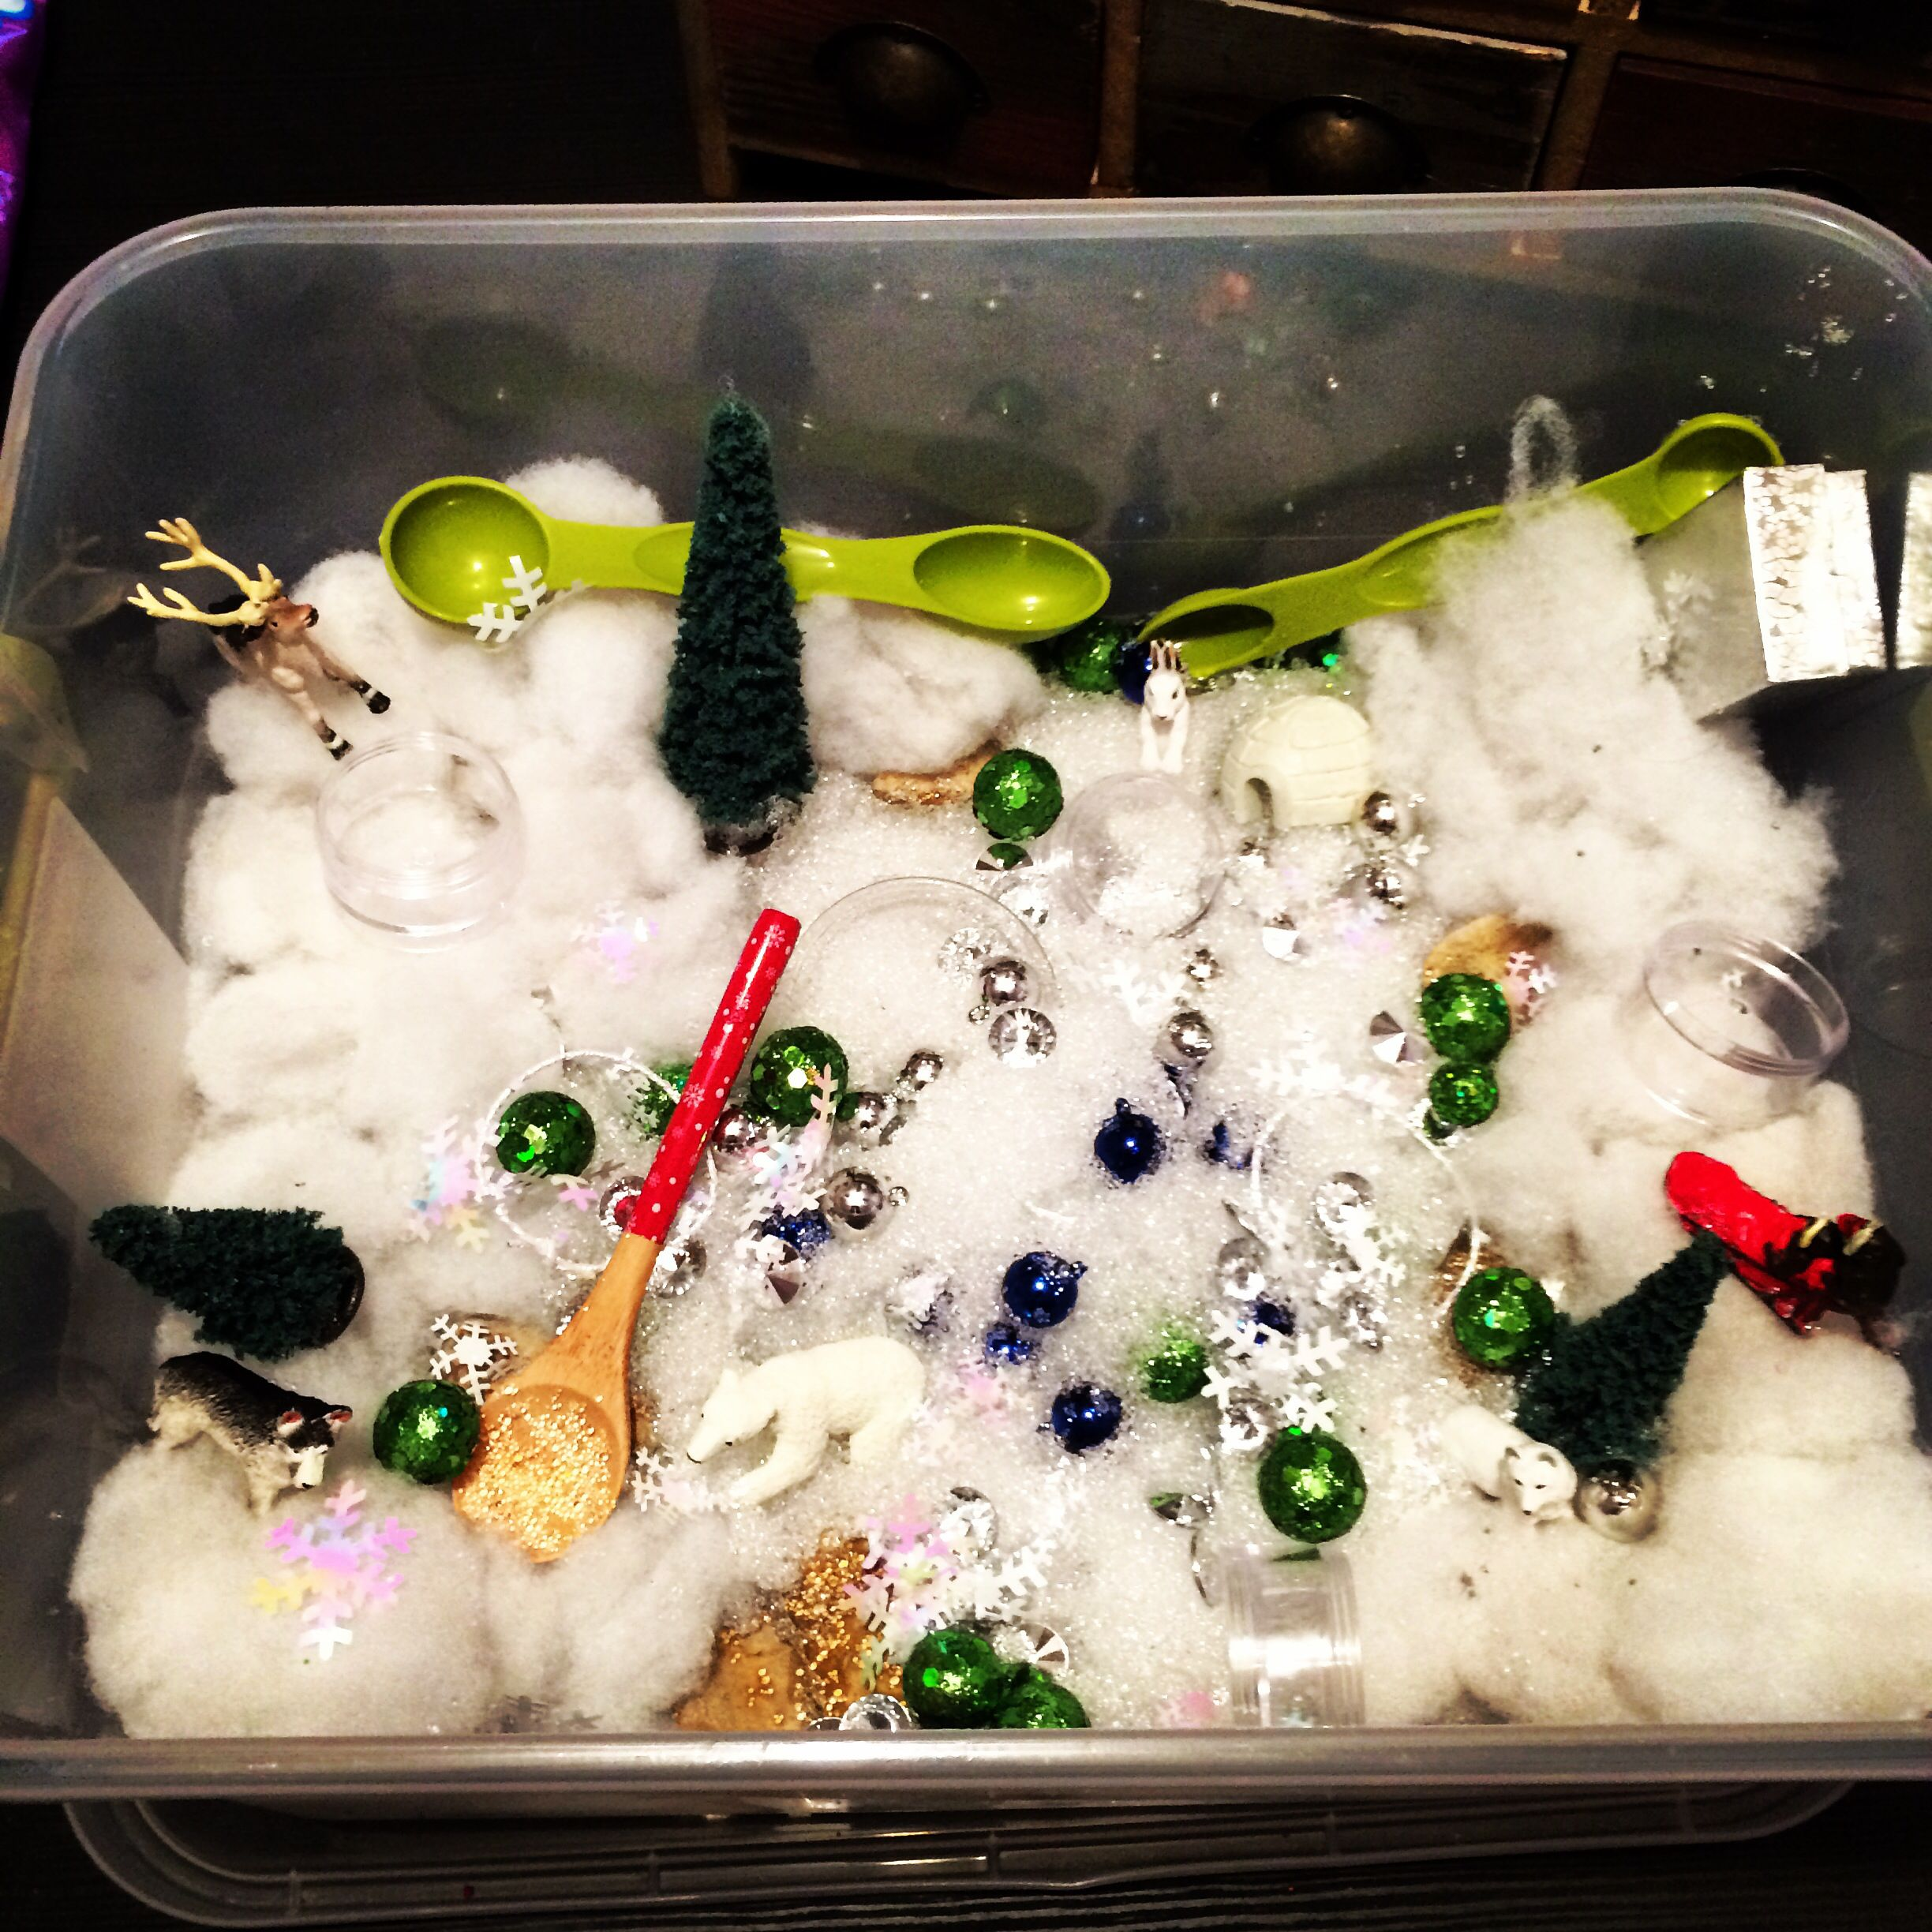 Winter sensory tub.. Using SnowReal decorative snow and fiber fill scented with mint extract